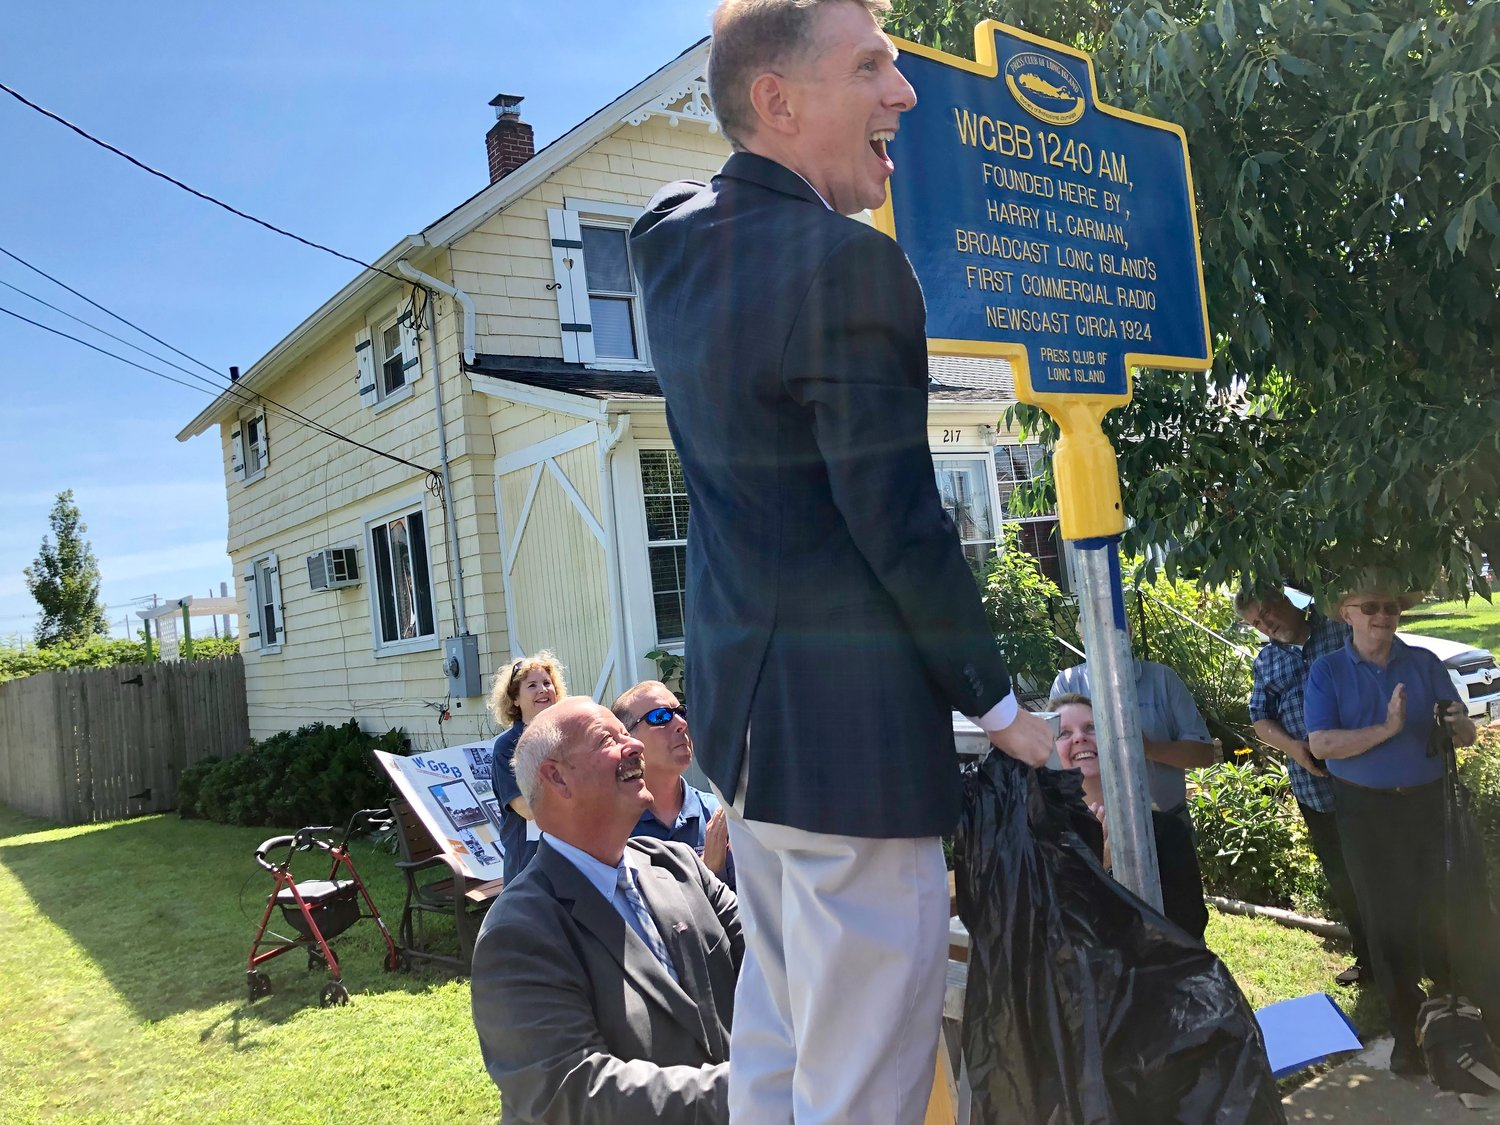 David North, representing the Press Club of Long Island, unveiled the new WGBB marker on Tuesday on Bedell Street, the original site of the radio station, which began broadcasting in August 1924.